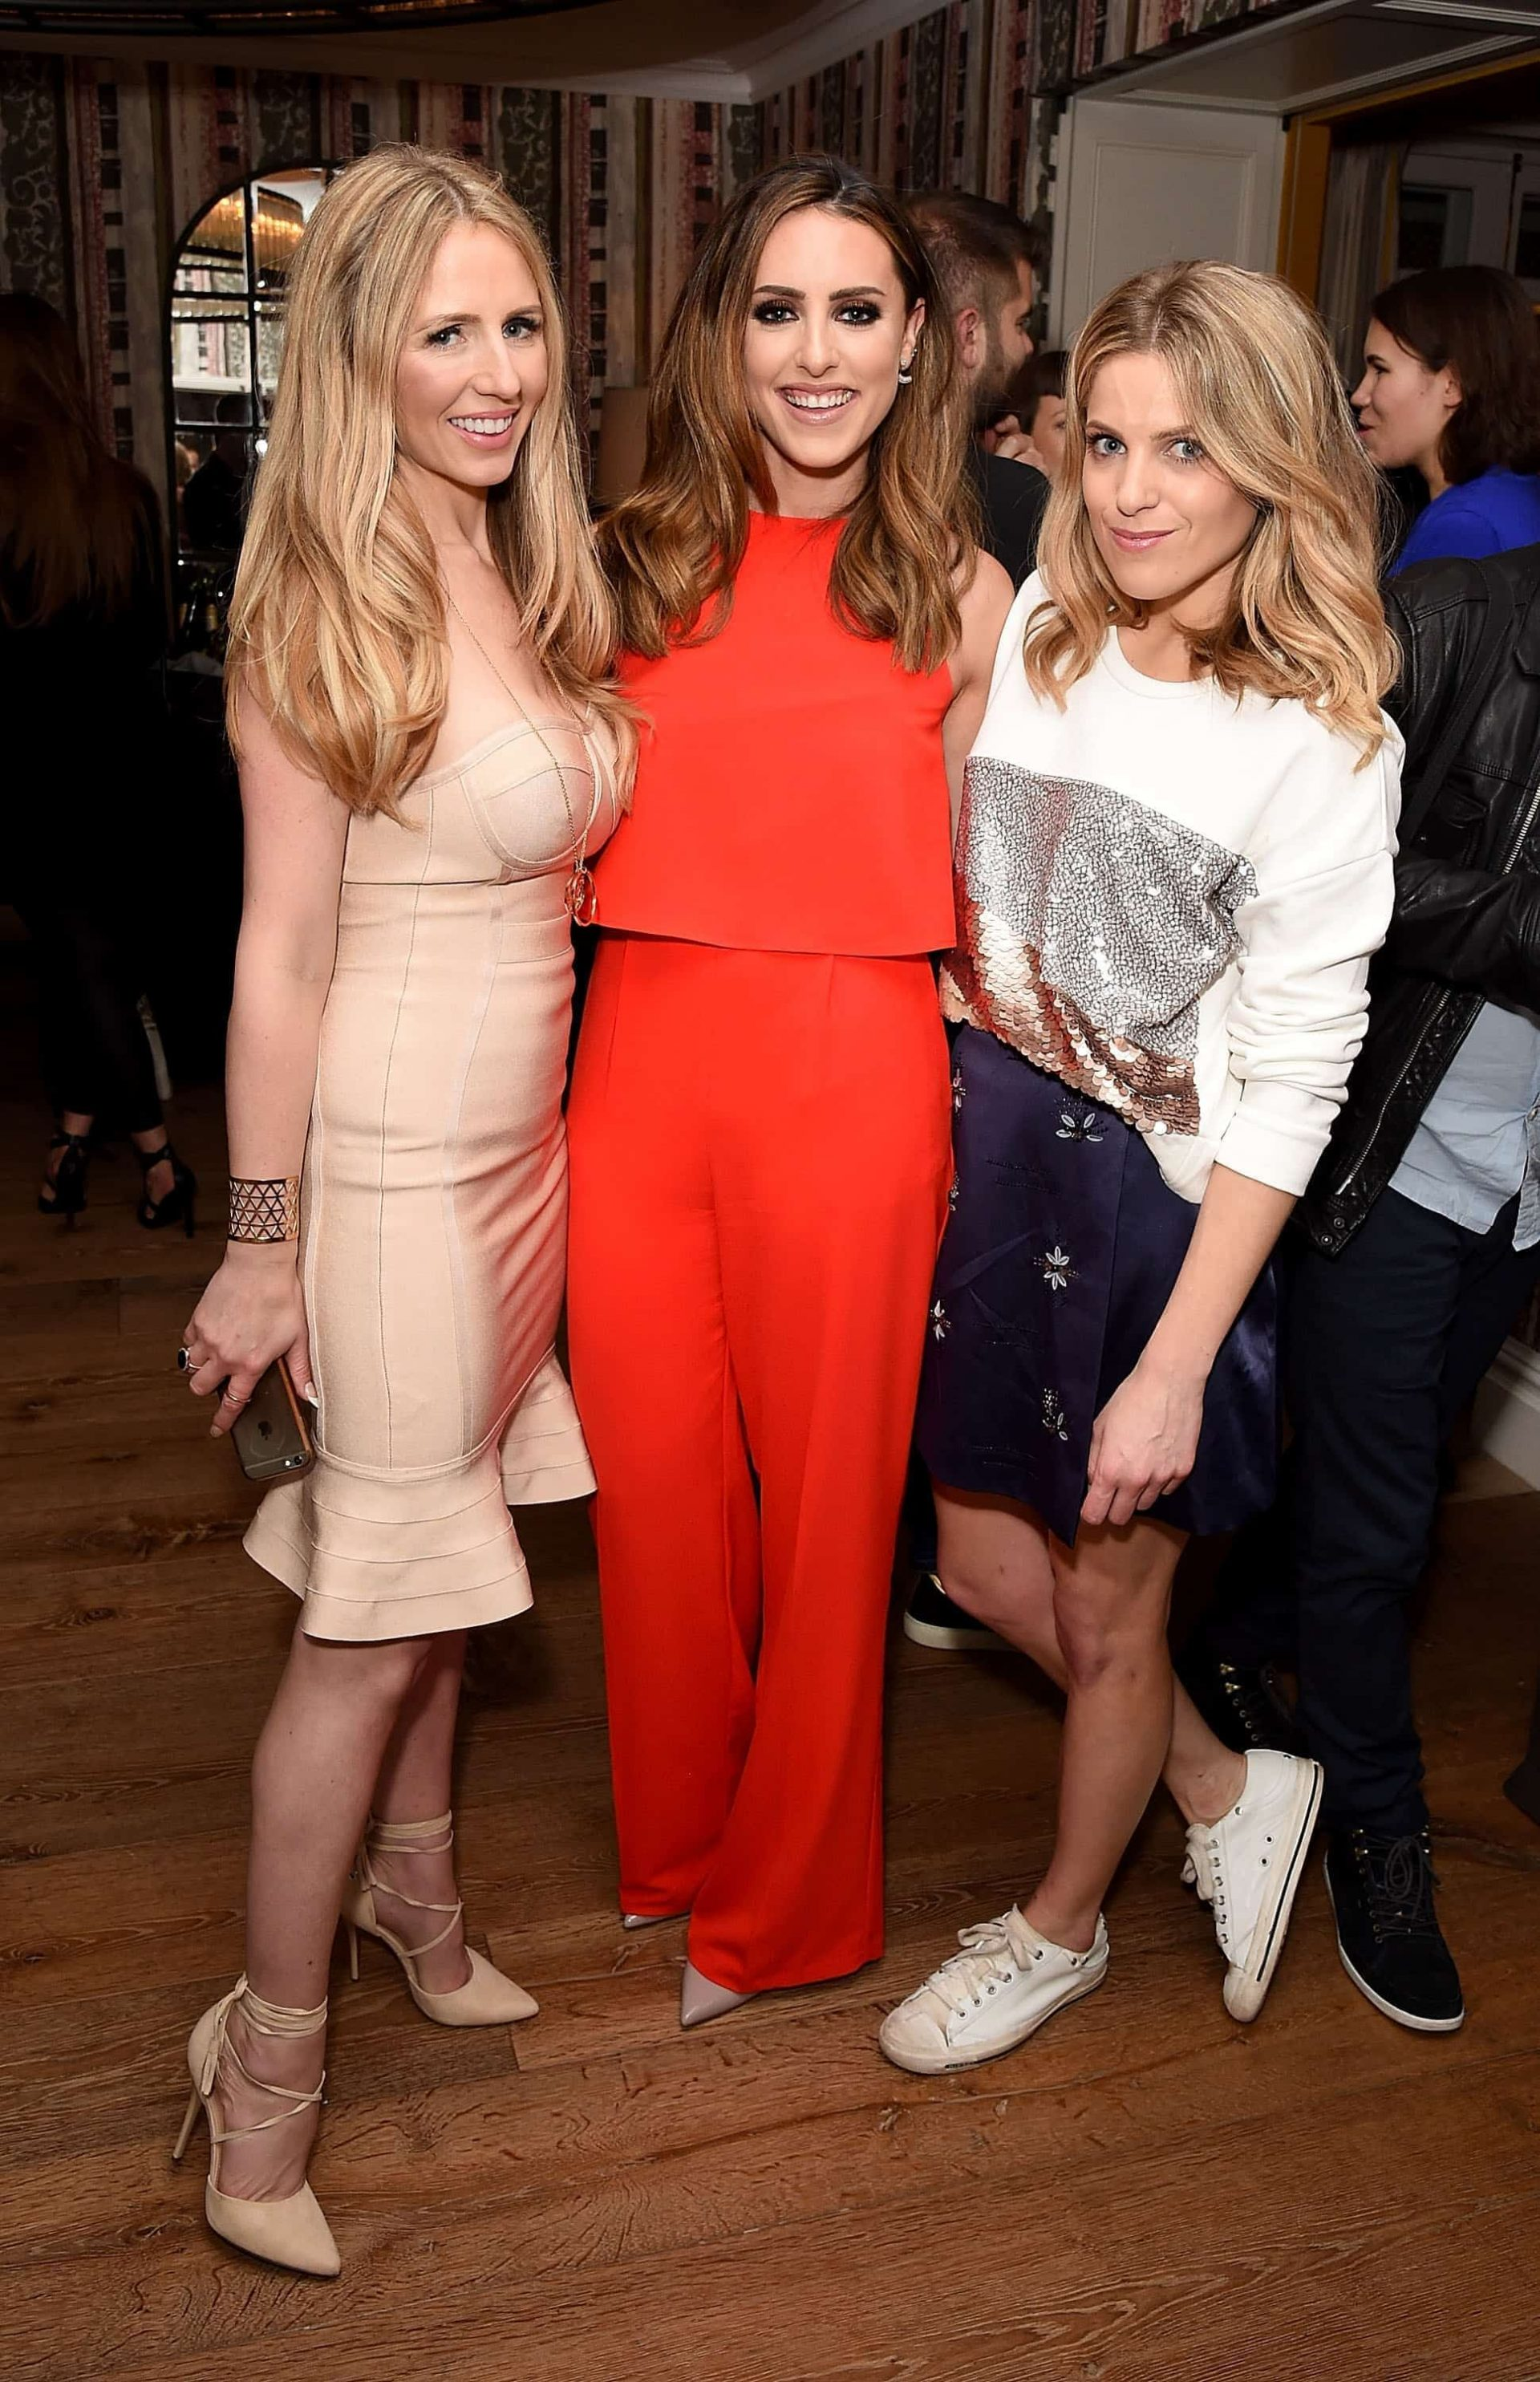 """LONDON, ENGLAND - JUNE 02:  (L-R) Naomi Isted, Sabrina Chakici and Olivia Cox attend the launch of new US celebrity dating show """"Famously Single"""" featuring Calum Best on June 2, 2016 in London, England. The show will be available on hayu from Wednesday 15th June and on E! Sunday 19th June at 10pm.  (Photo by David M. Benett/Dave Benett/Getty Images for E! / hayu - NBCUniversal) *** Local Caption *** Naomi Isted; Sabrina Chakici; Olivia Cox"""